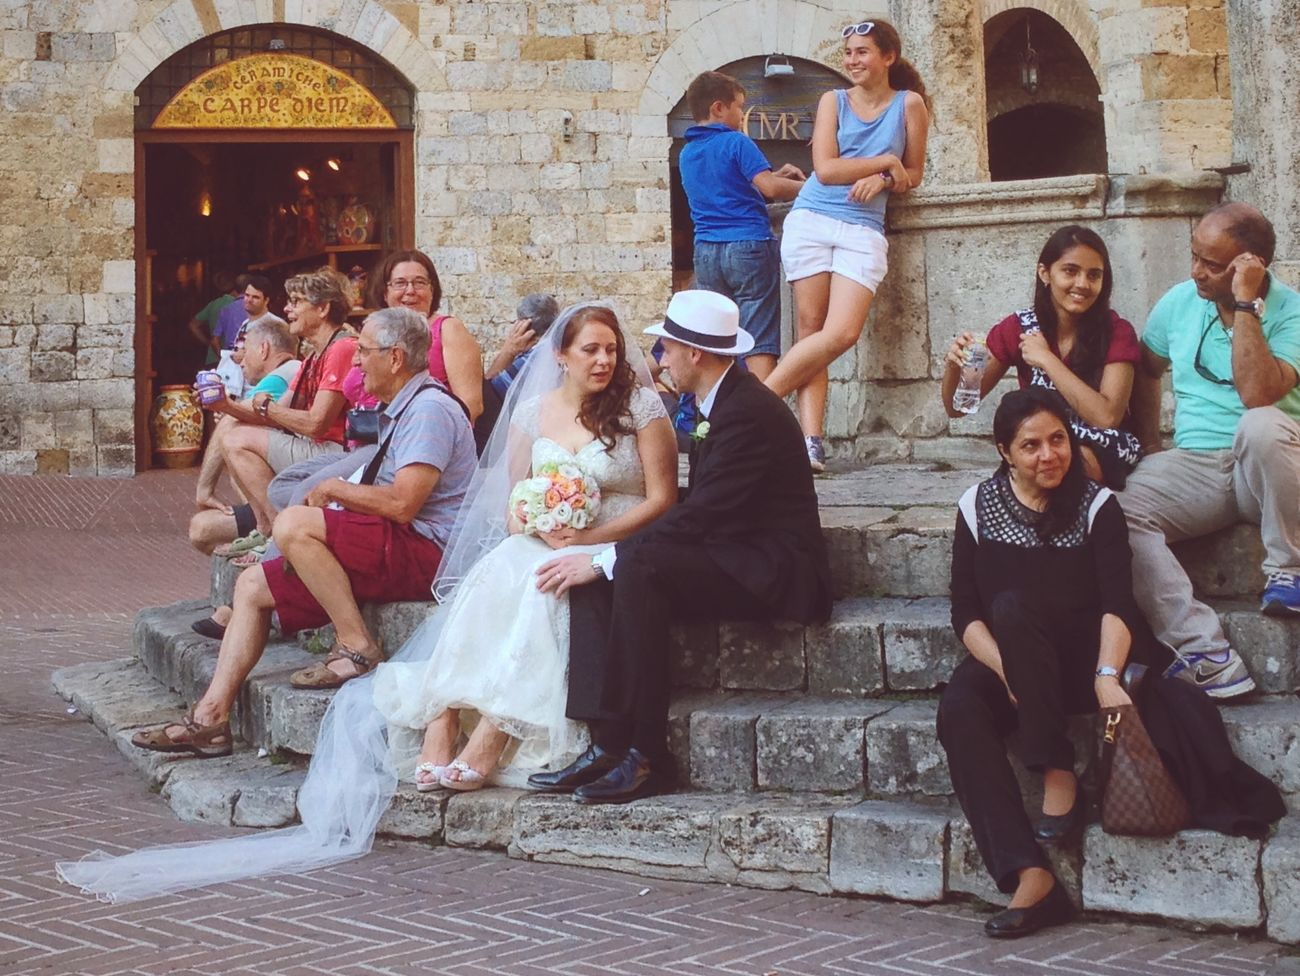 EyeEm Traveling Shootermag Visual Witness People Watching Showcase: January Hello World Around The World Vscocam EyeEm In San Gimignano Weddings Around The World The Street Photographer - 2016 EyeEm Awards